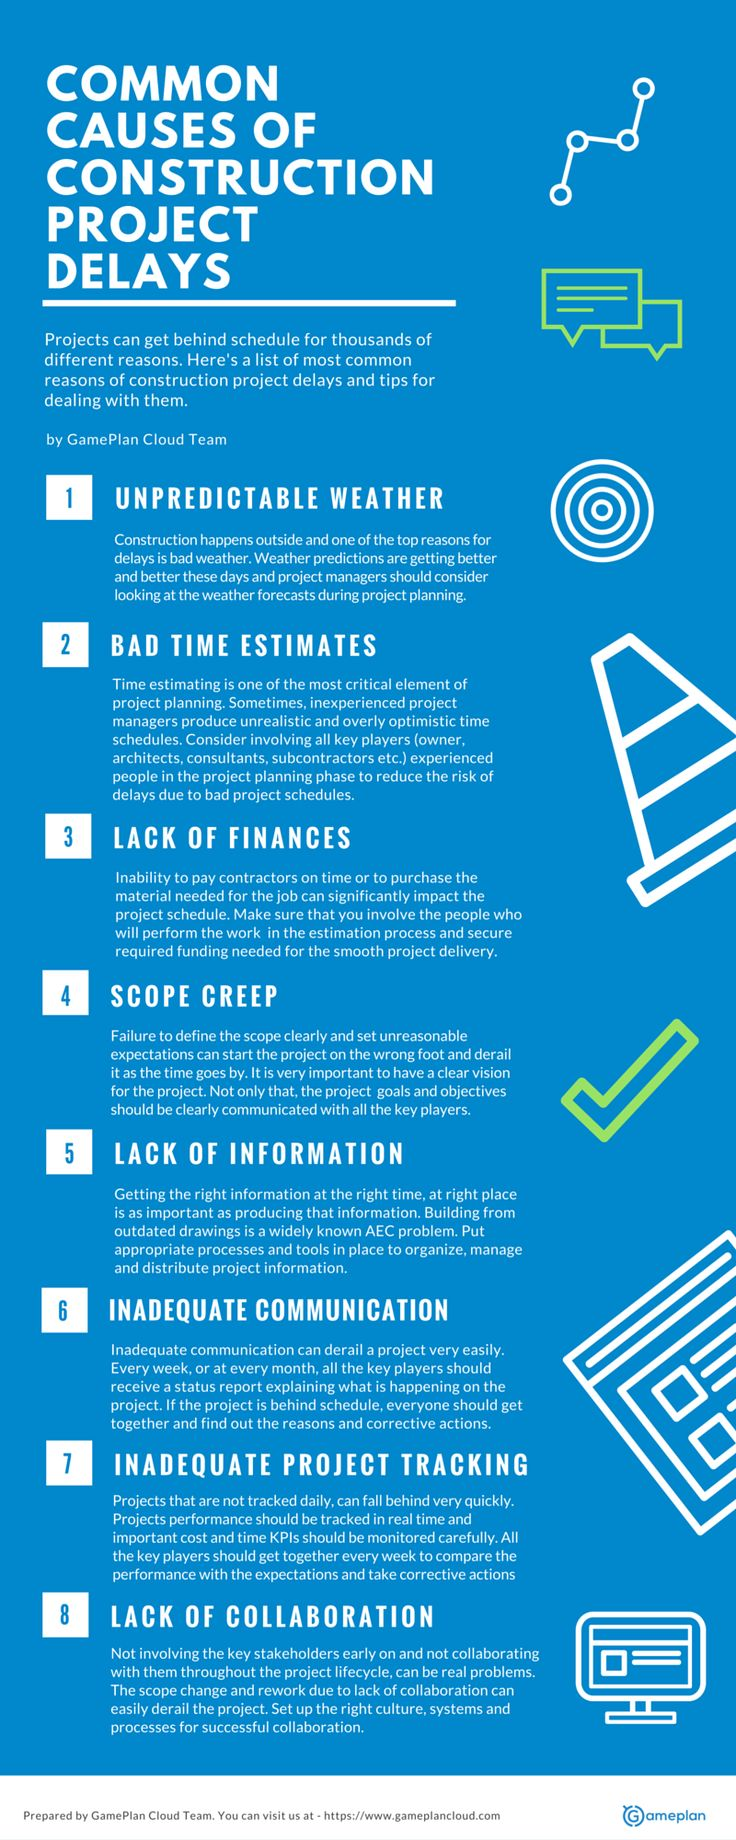 Common Causes of Construction Project Delays - Unpredictable Weather, Bad Time Estimated, Lack of Finances, Scope Creep, Lack of Information